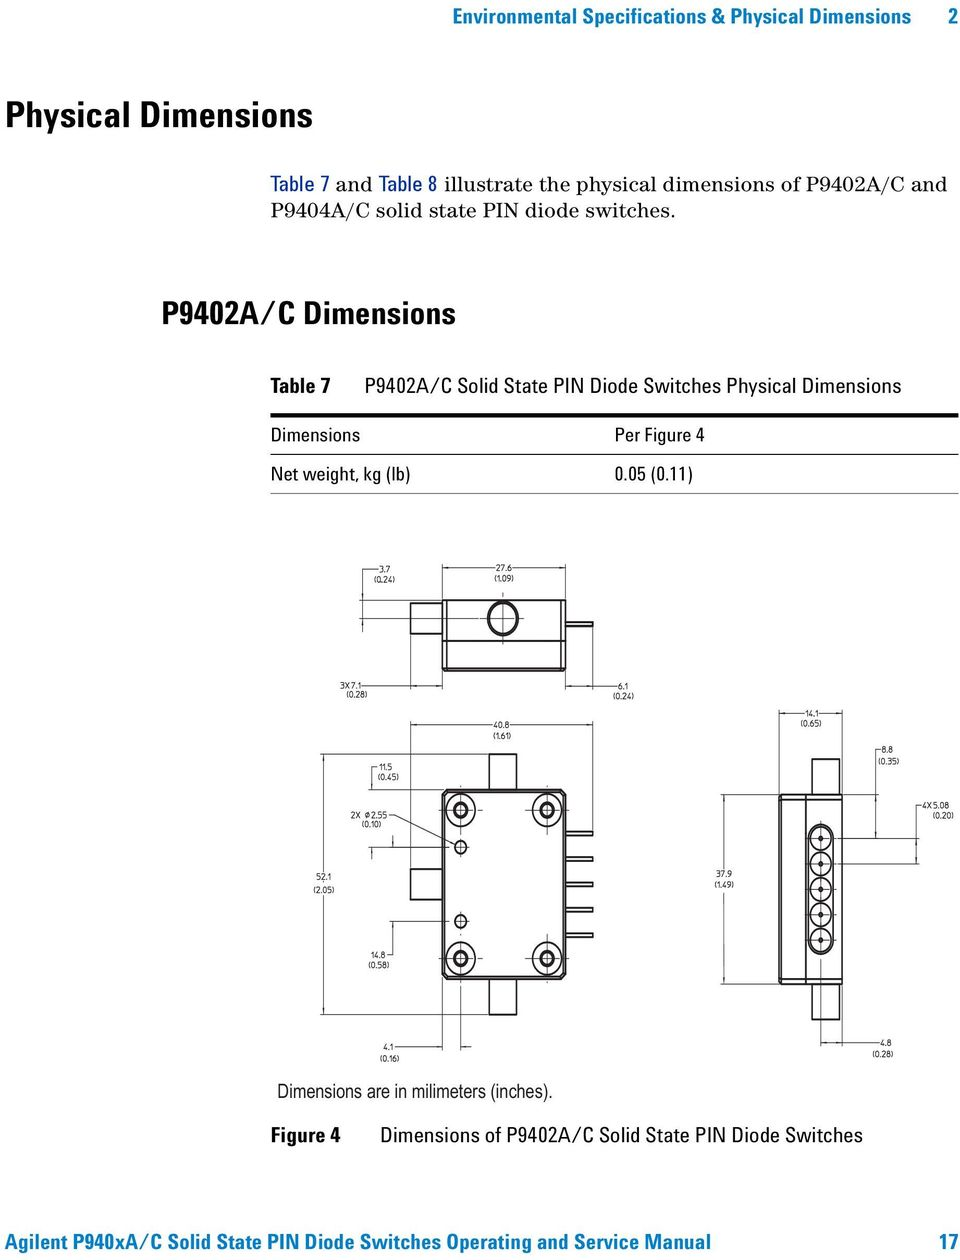 P9402A/C Dimensions Table 7 P9402A/C Solid State PIN Diode Switches Physical Dimensions Dimensions Per Figure 4 Net weight, kg